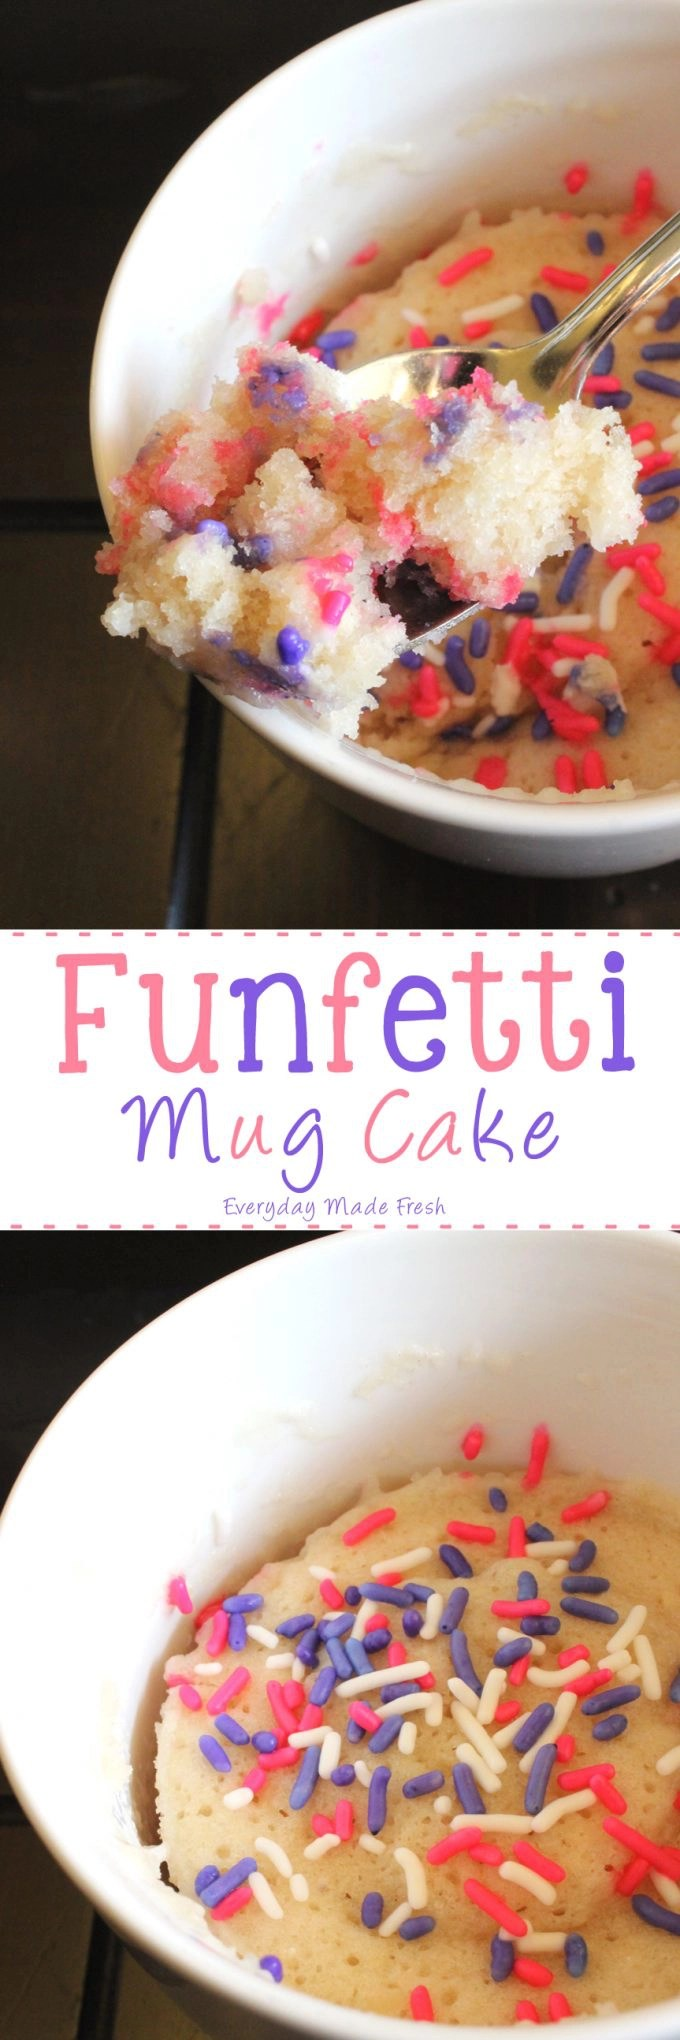 You are exactly 1 minute and 20 seconds away from this yummy Funfetti Mug Cake! | EverydayMadeFresh.com